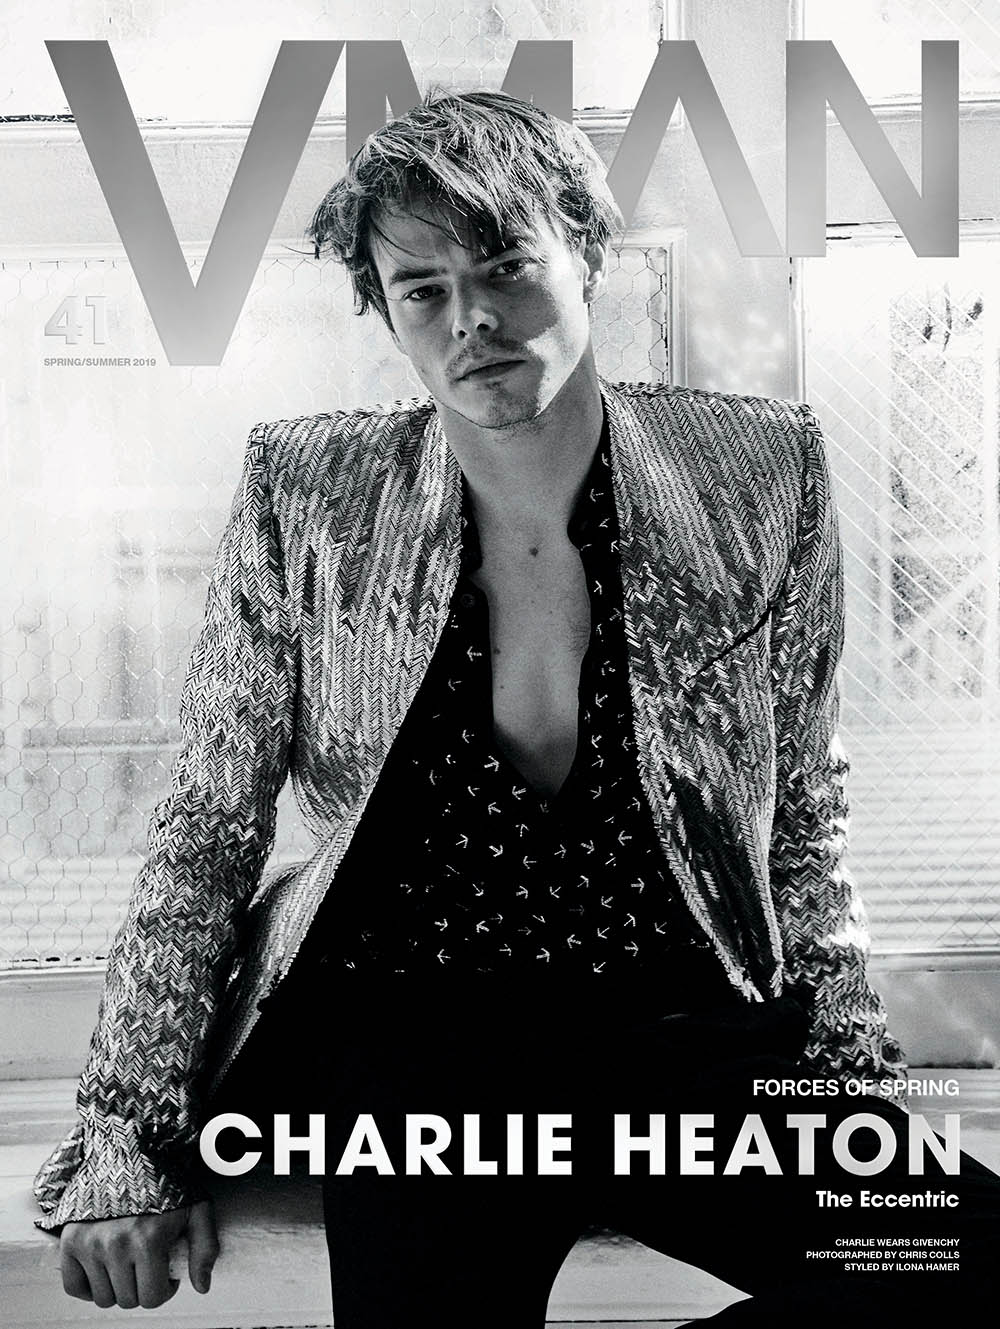 Hero Fiennes-Tiffin, Mark Ronson and Charlie Heaton cover VMan Spring Summer 2019 by Chris Colls